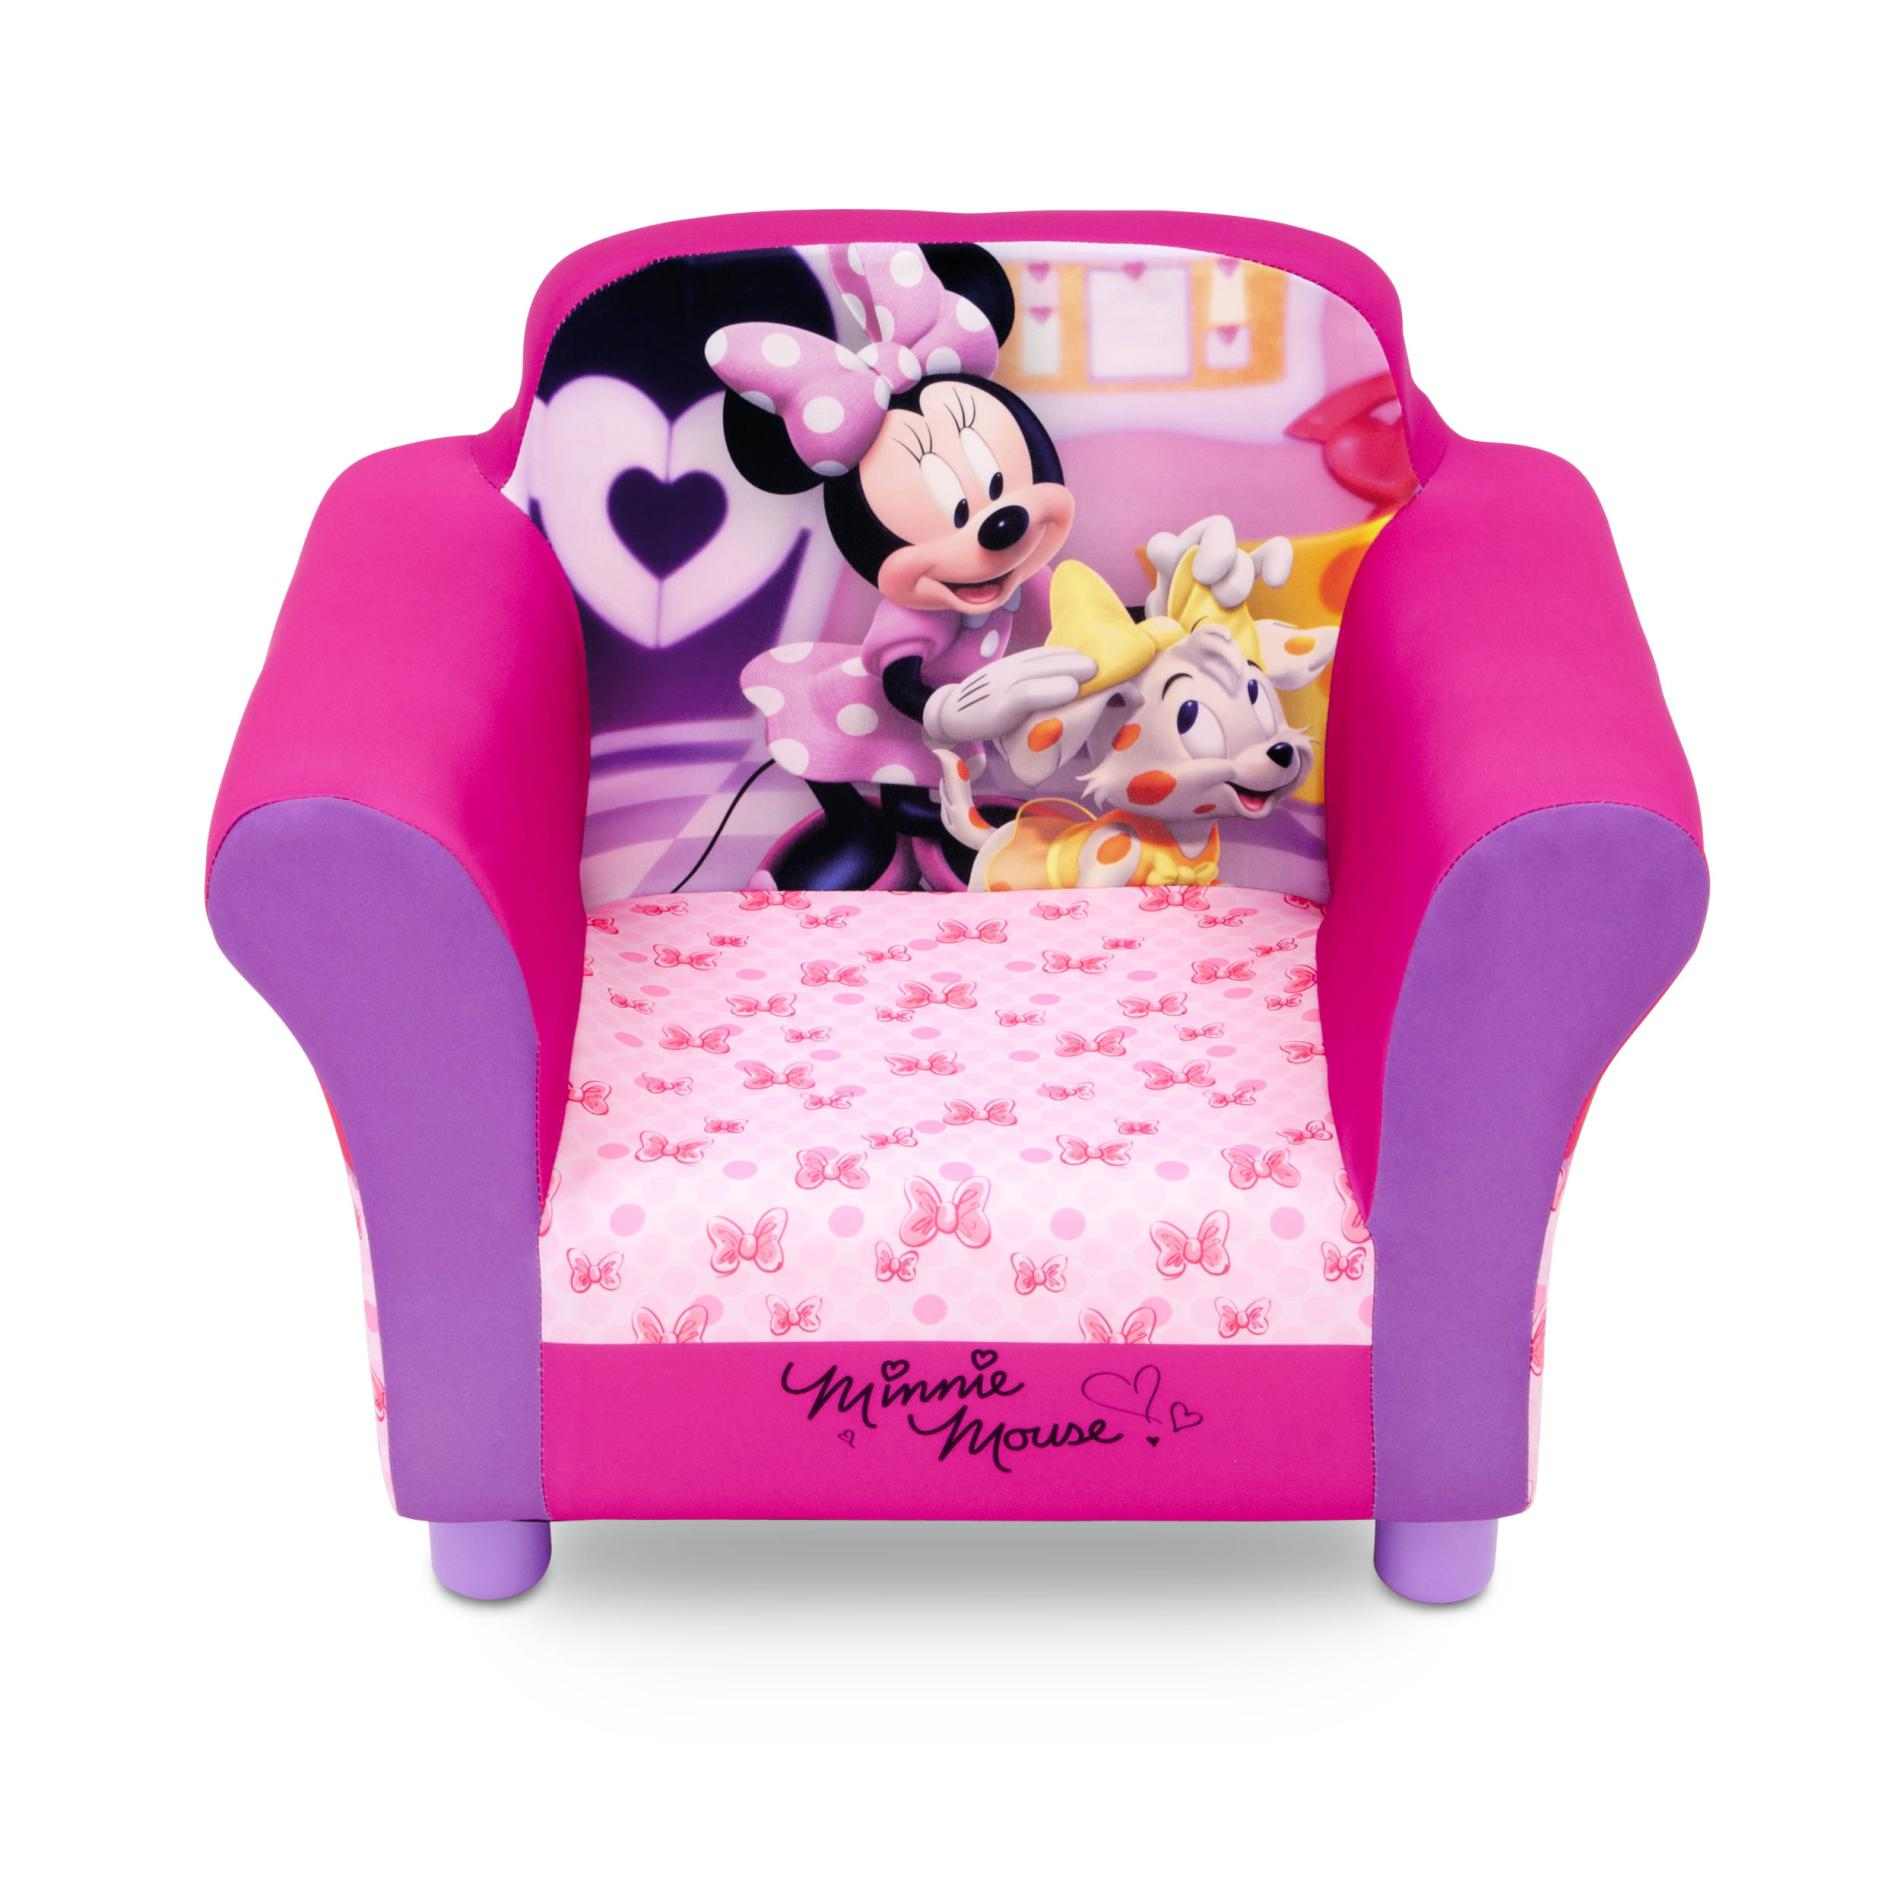 Disney Toddler Girls Upholstered Chair  Minnie Mouse